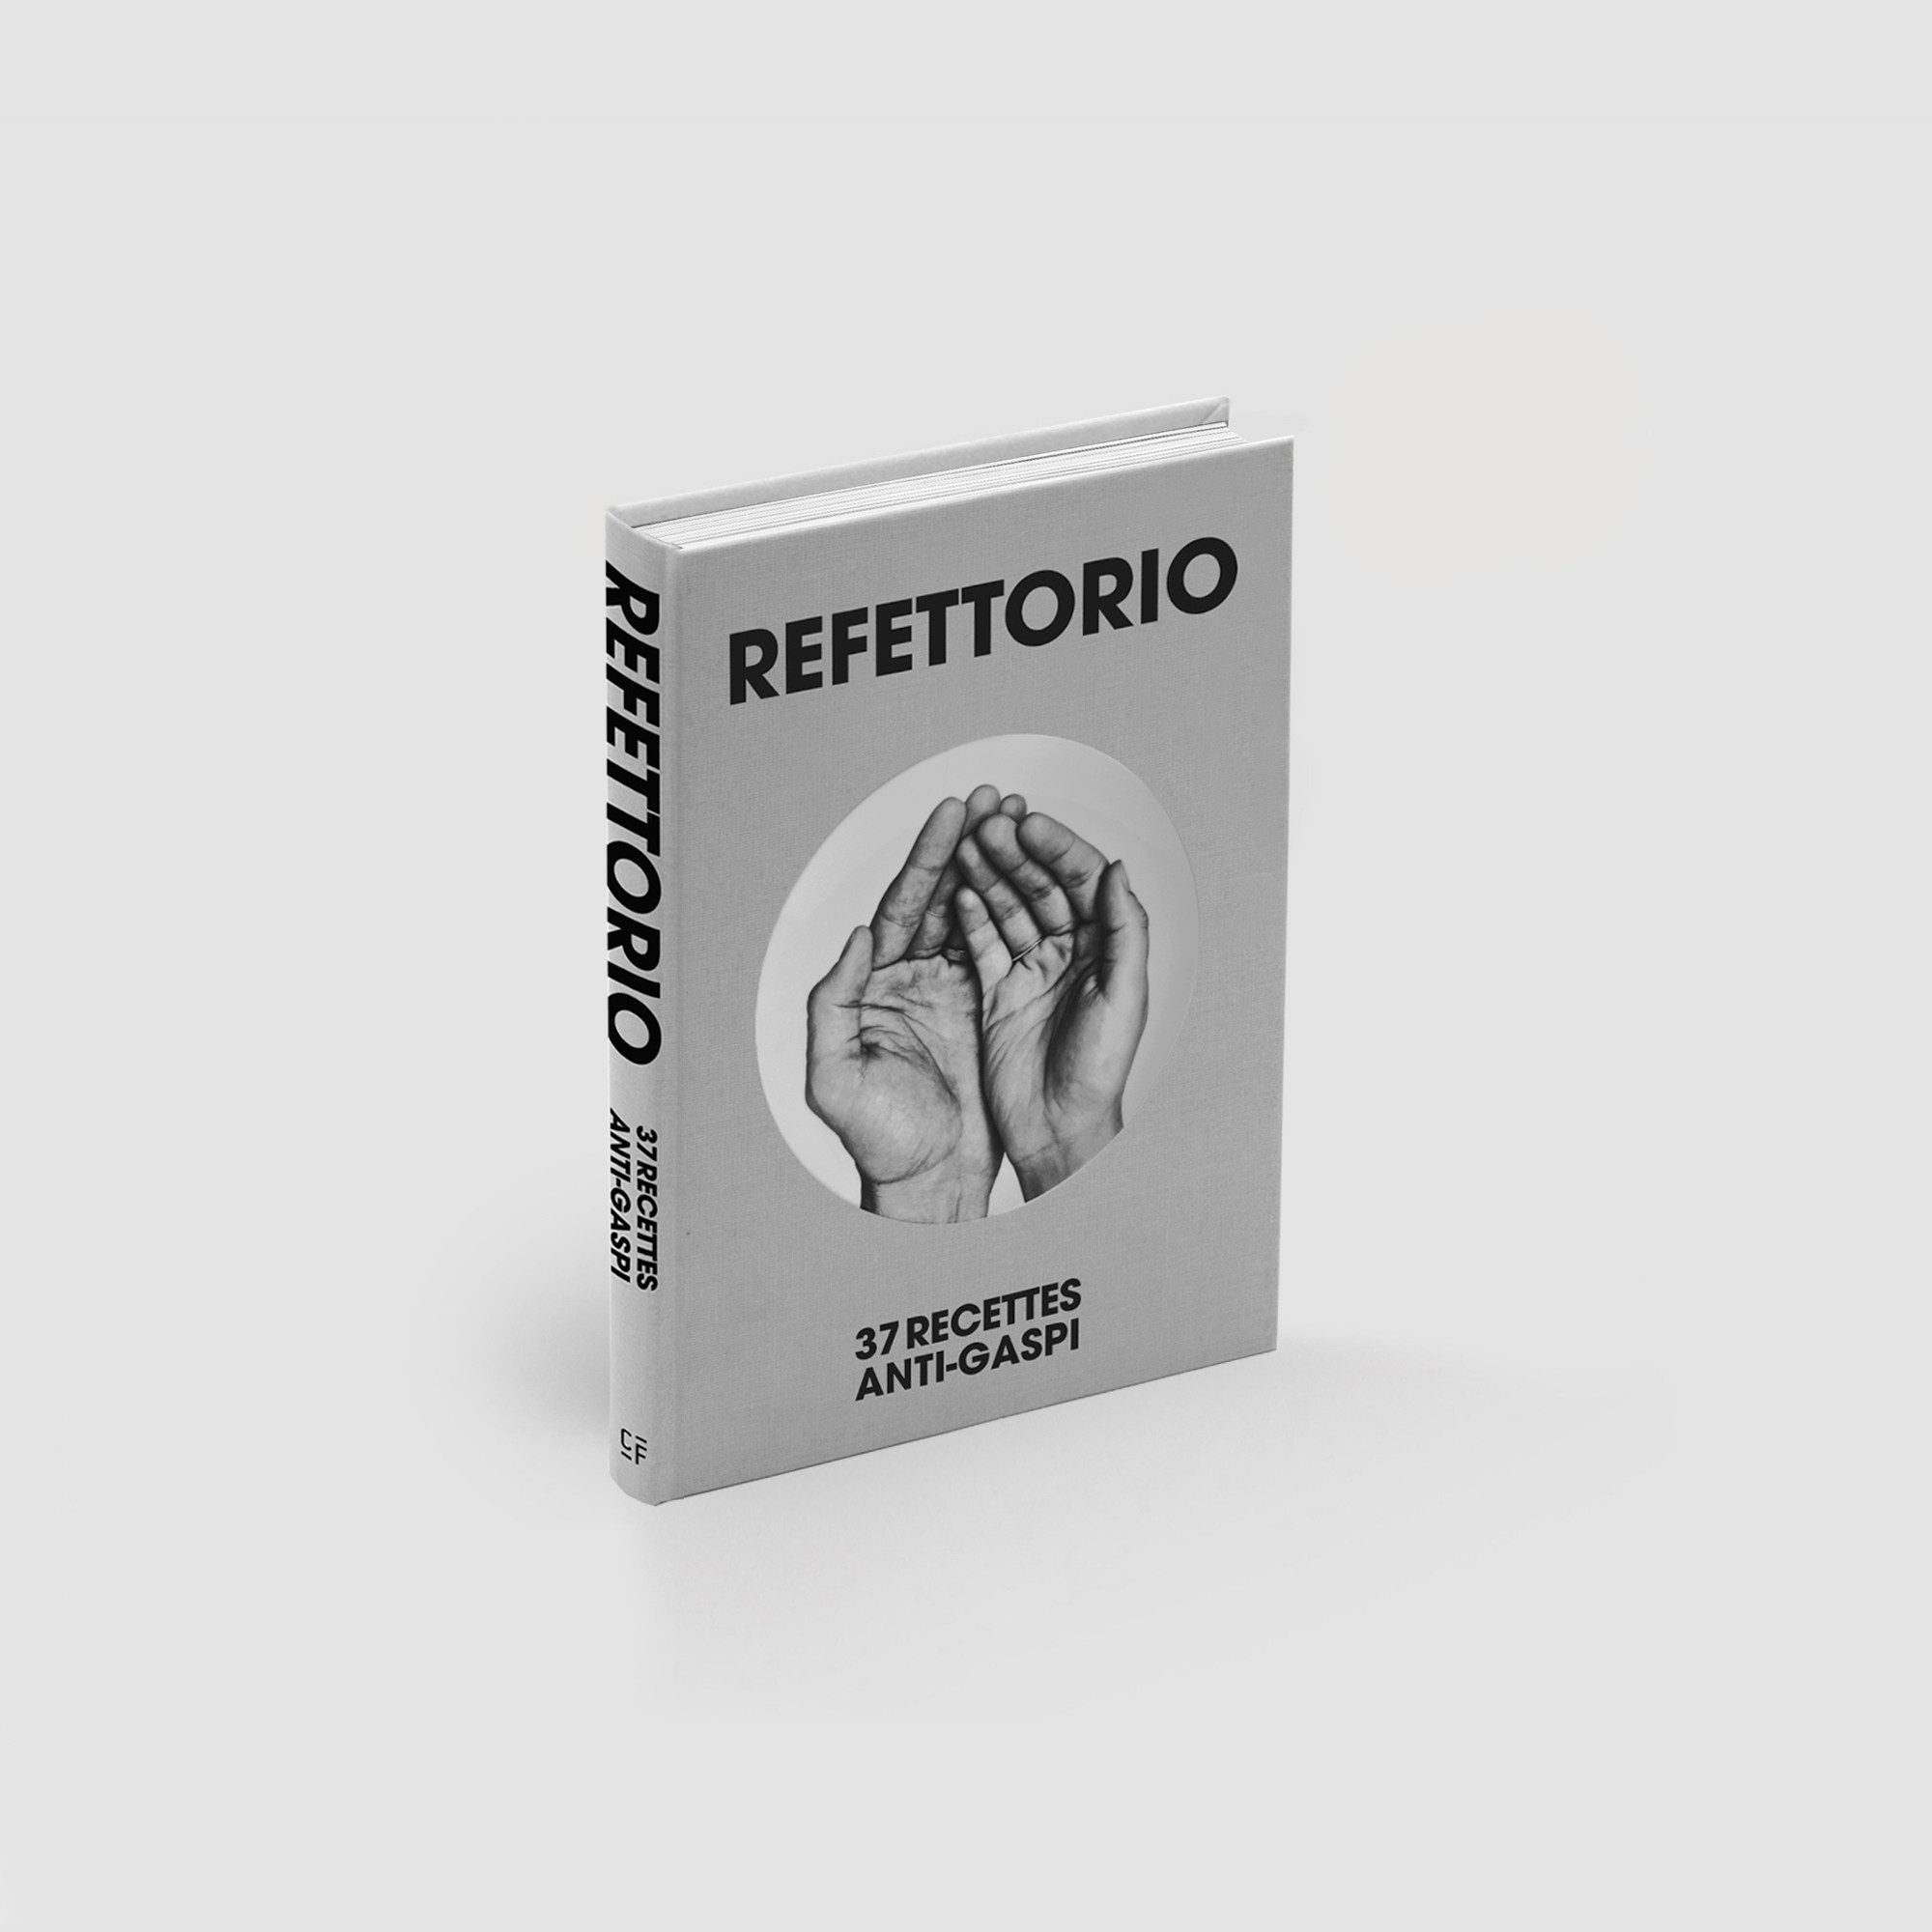 Refettorio | 37 Recettes anti-gaspi - French only